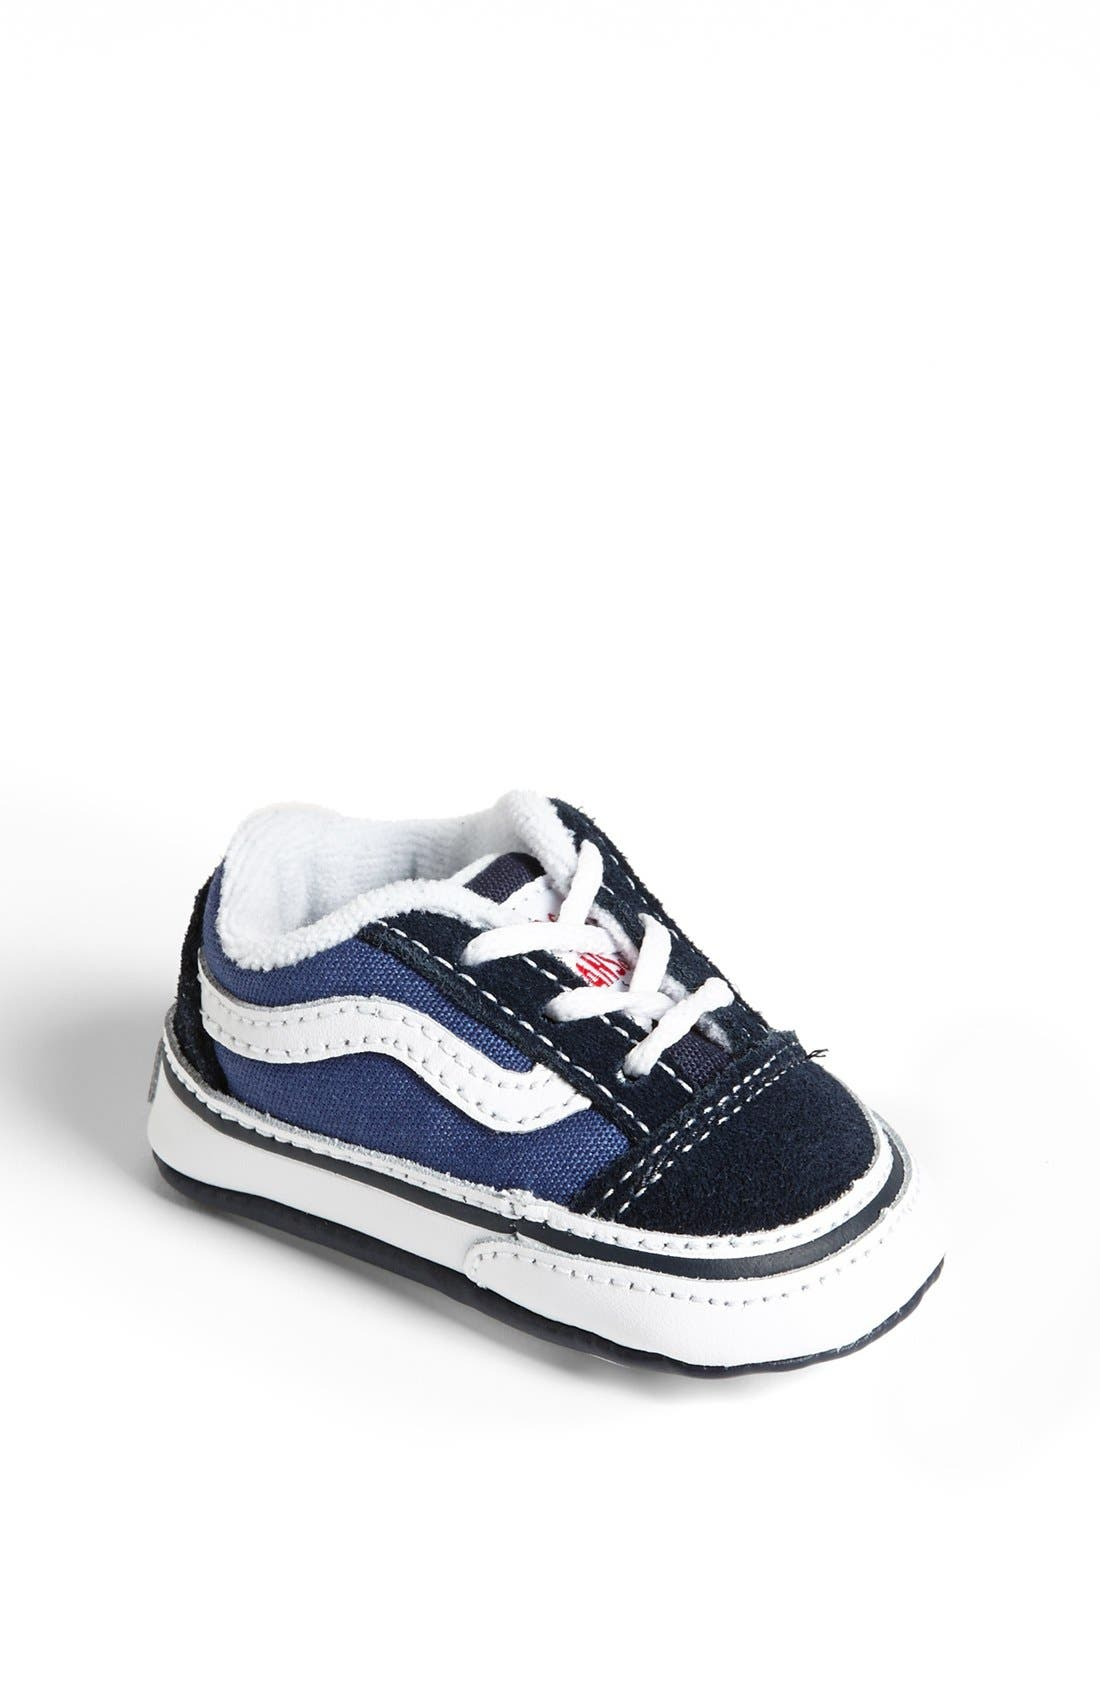 Main Image - Vans 'Old Skool' Crib Shoe (Baby)